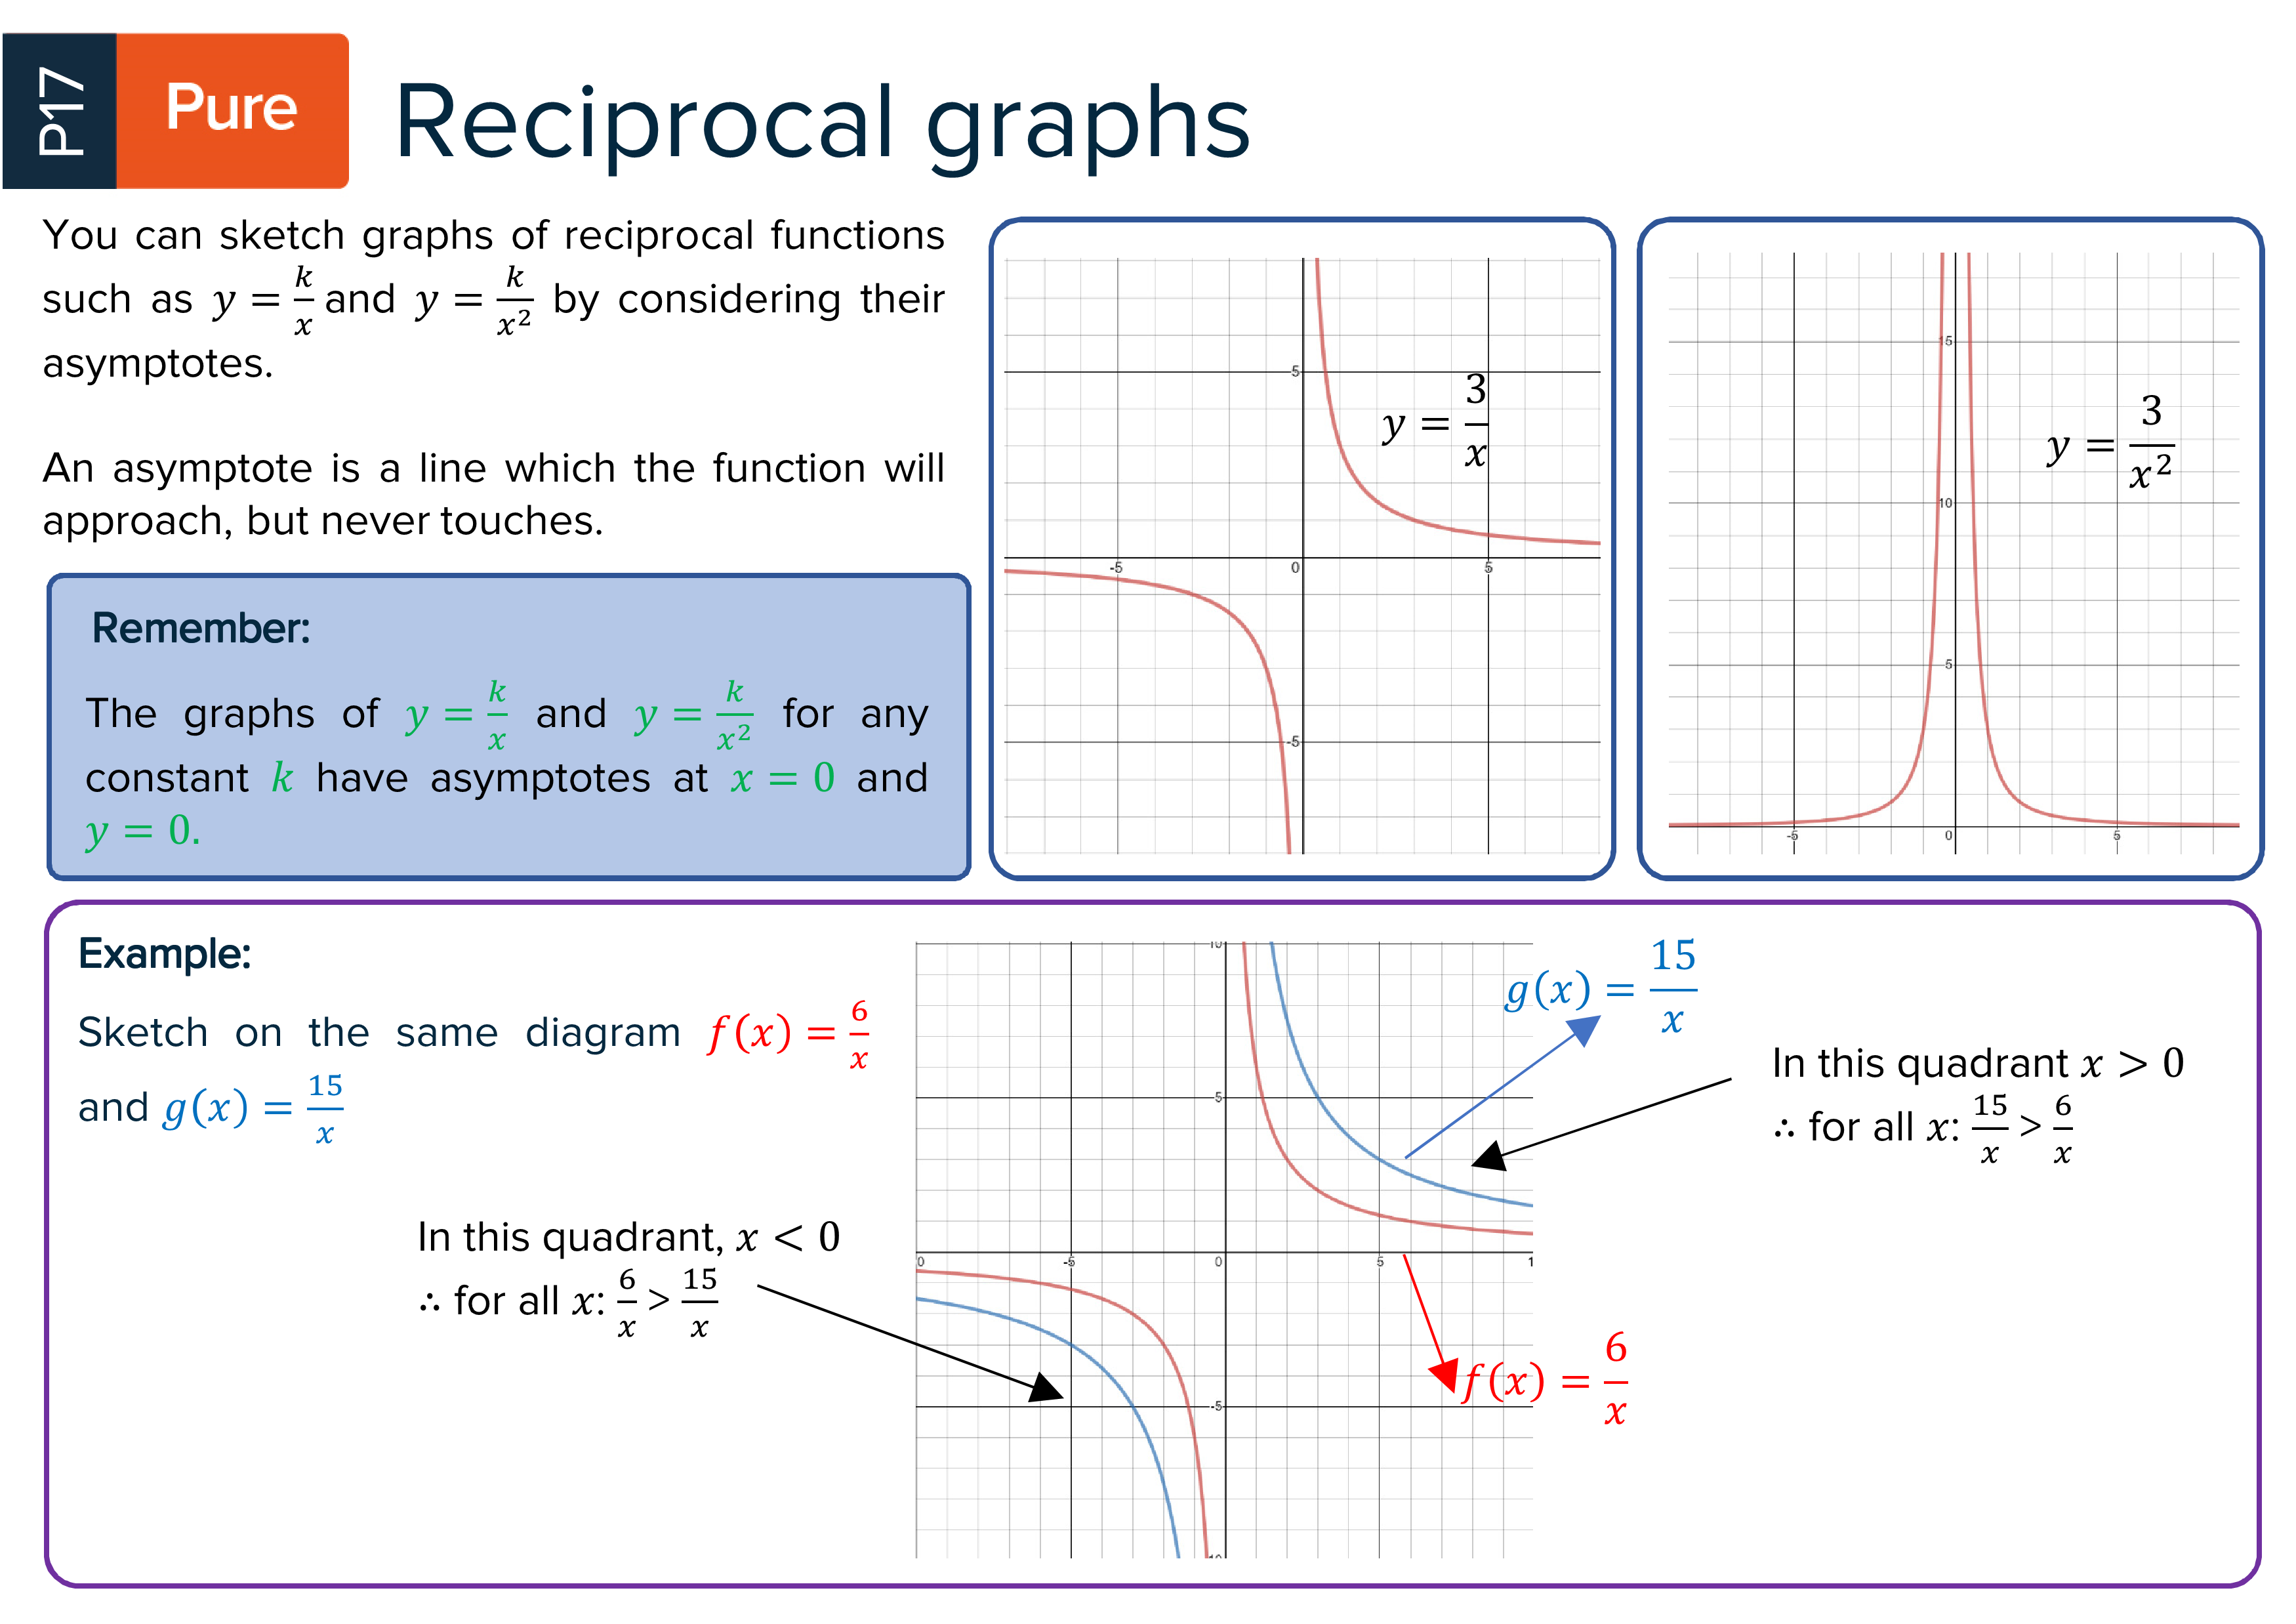 A Level Maths Revision Cards Preview Image